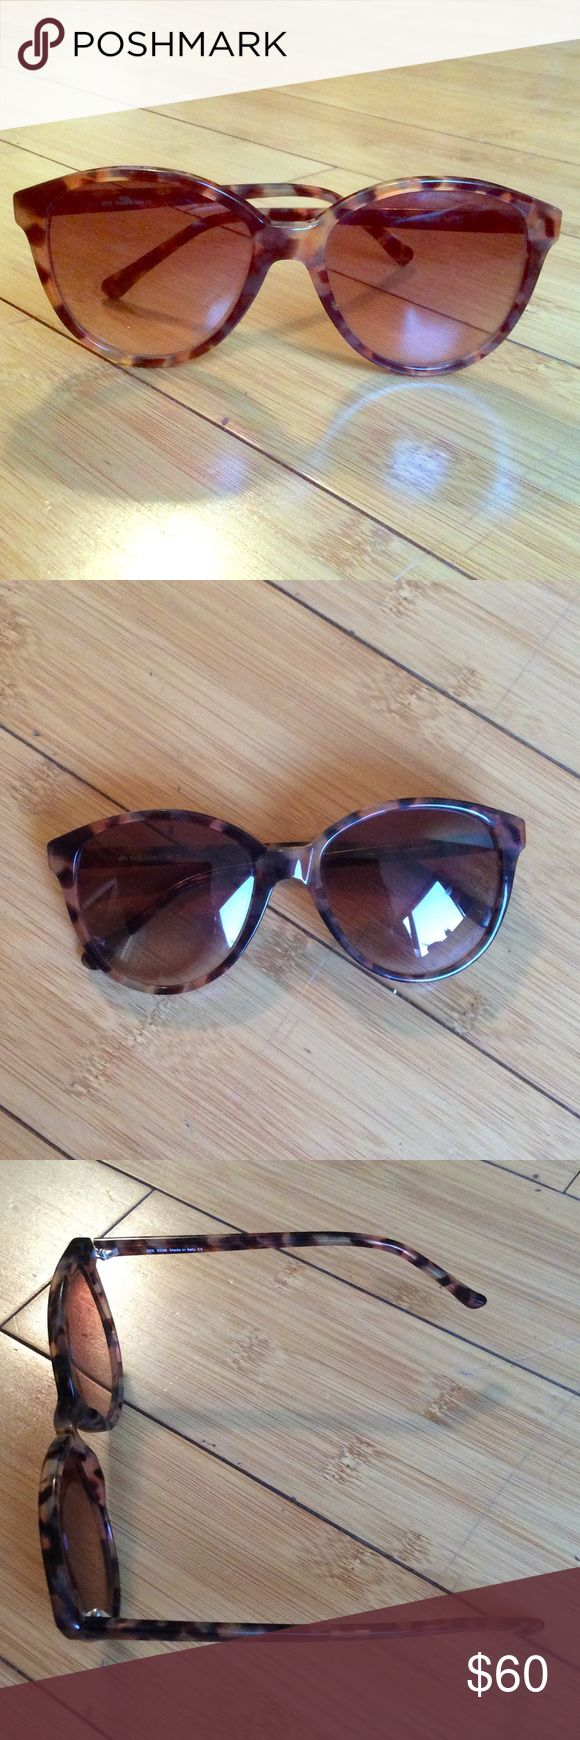 Tortoise Shell Sunglasses Super cute brown tortoise shell sunglasses SEE Accessories Sunglasses